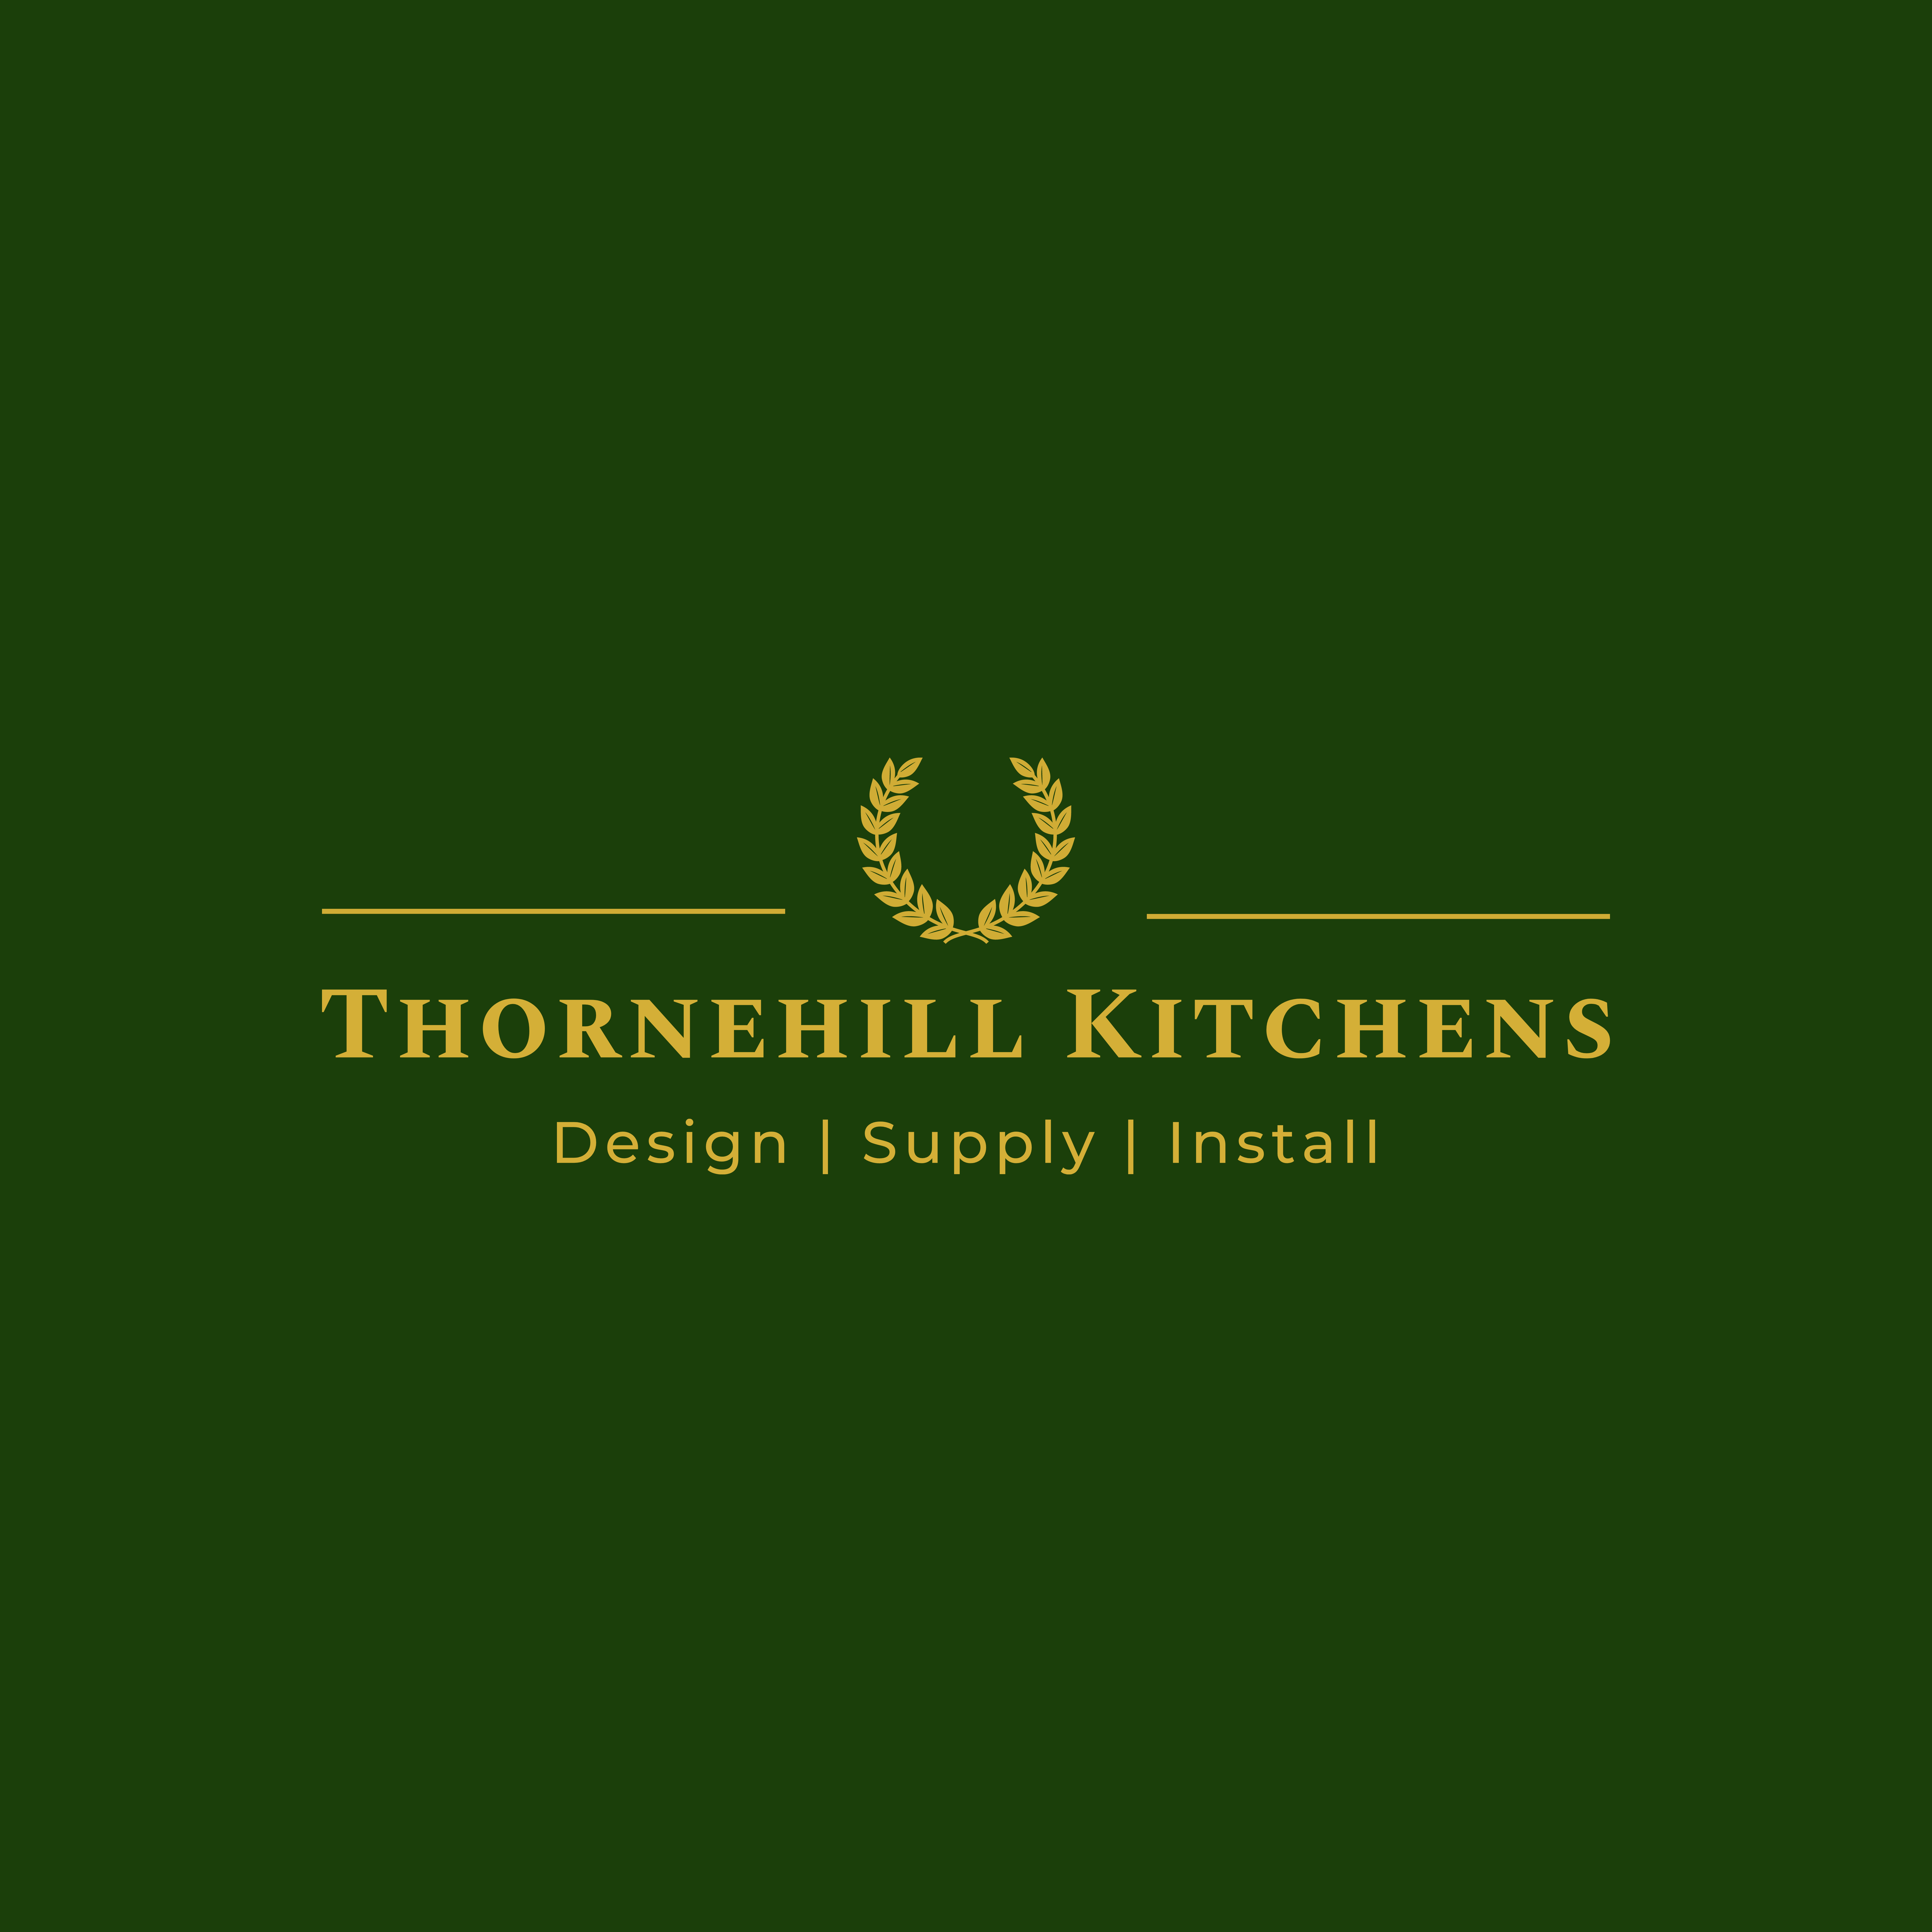 THORNEHILL KITCHENS LTD